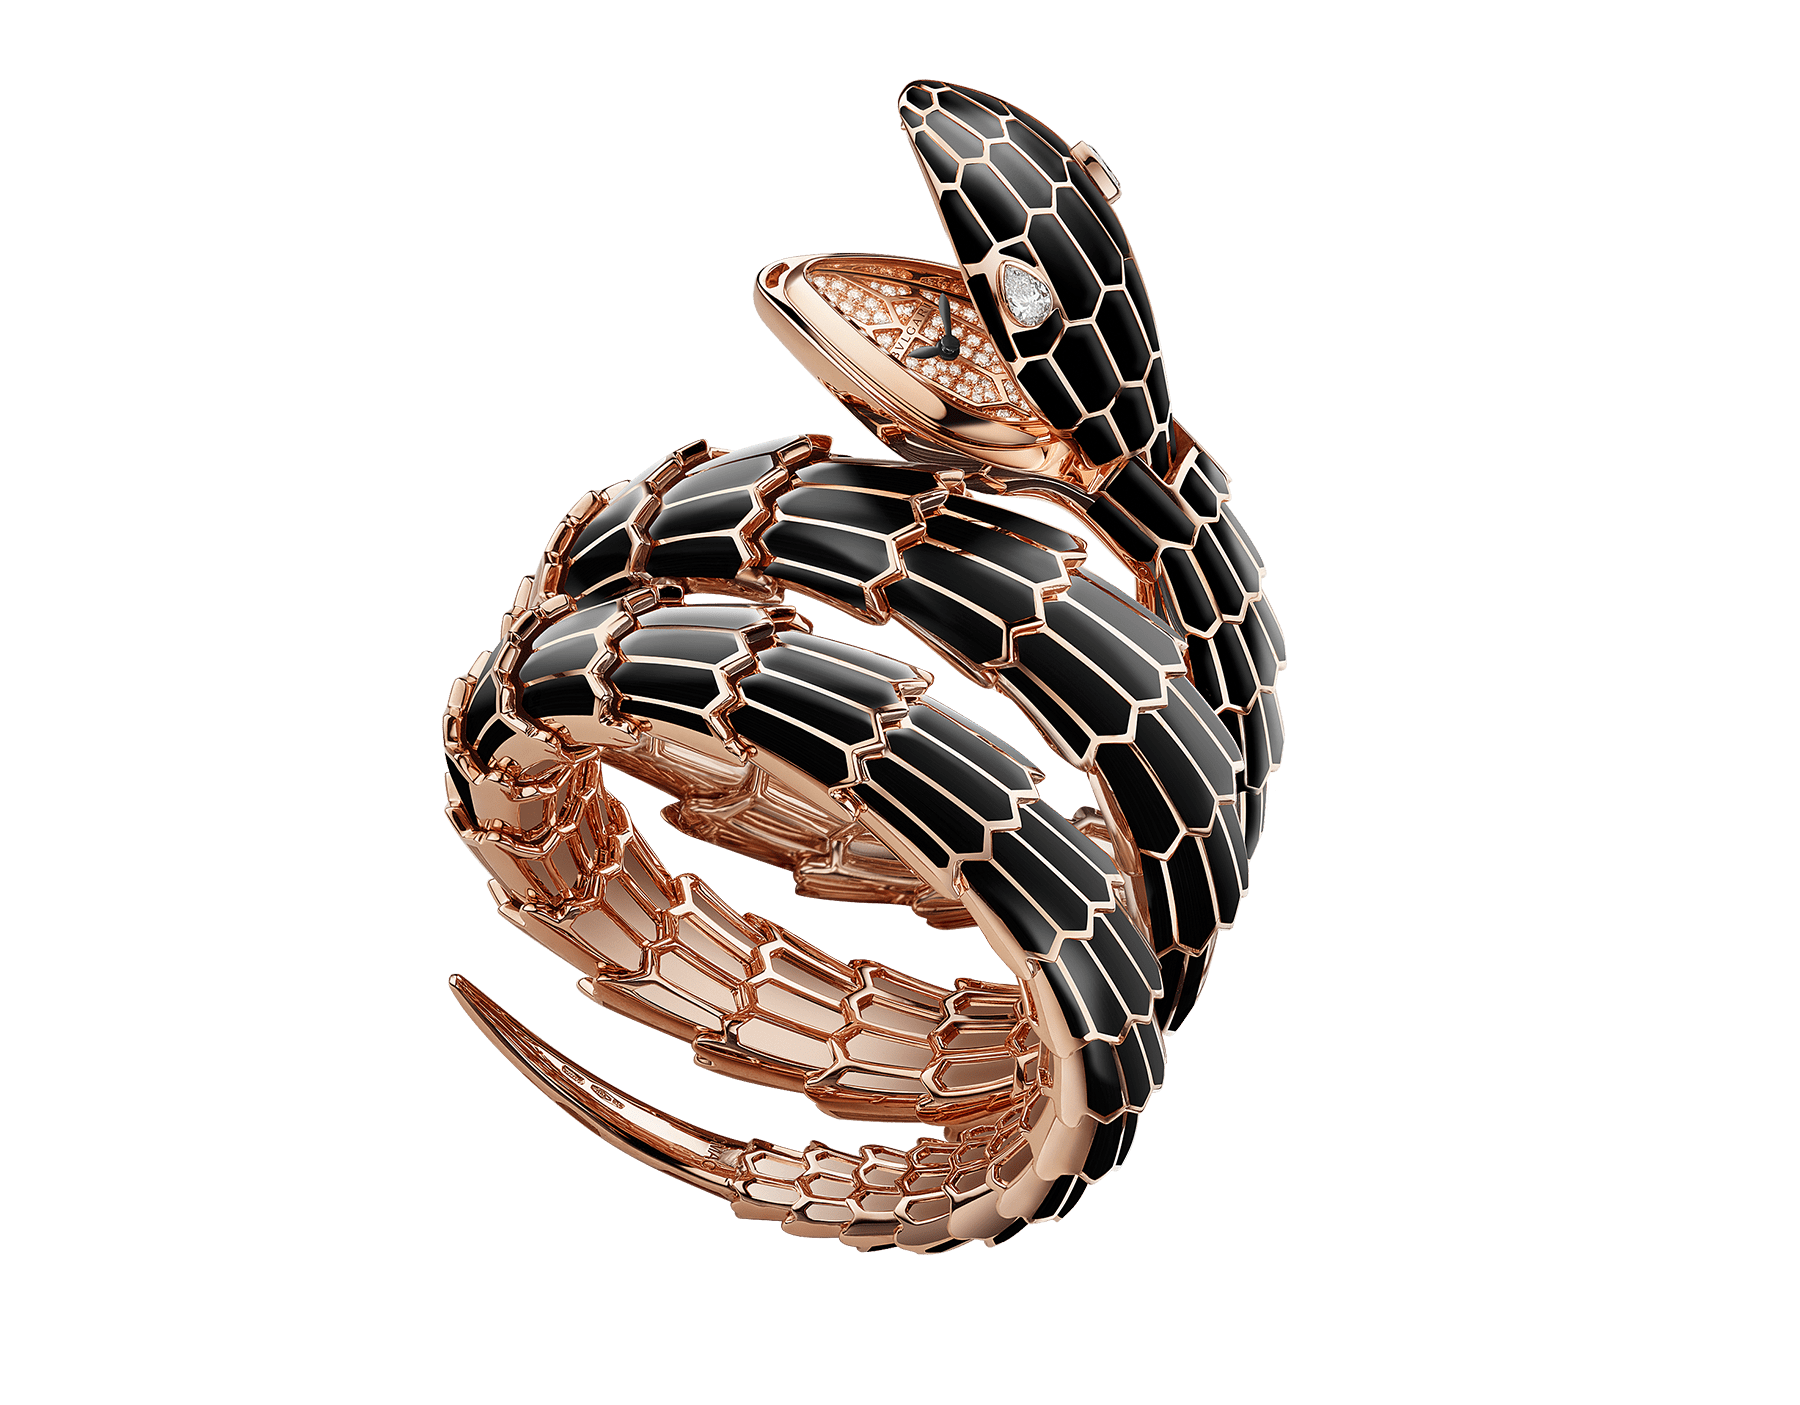 Serpenti Secret Watch with 18 kt rose gold head and double spiral bracelet, both coated with black lacquer, diamond eyes, 18 kt rose gold case and 18 kt rose gold dial set with brilliant cut diamonds. 102524 image 1